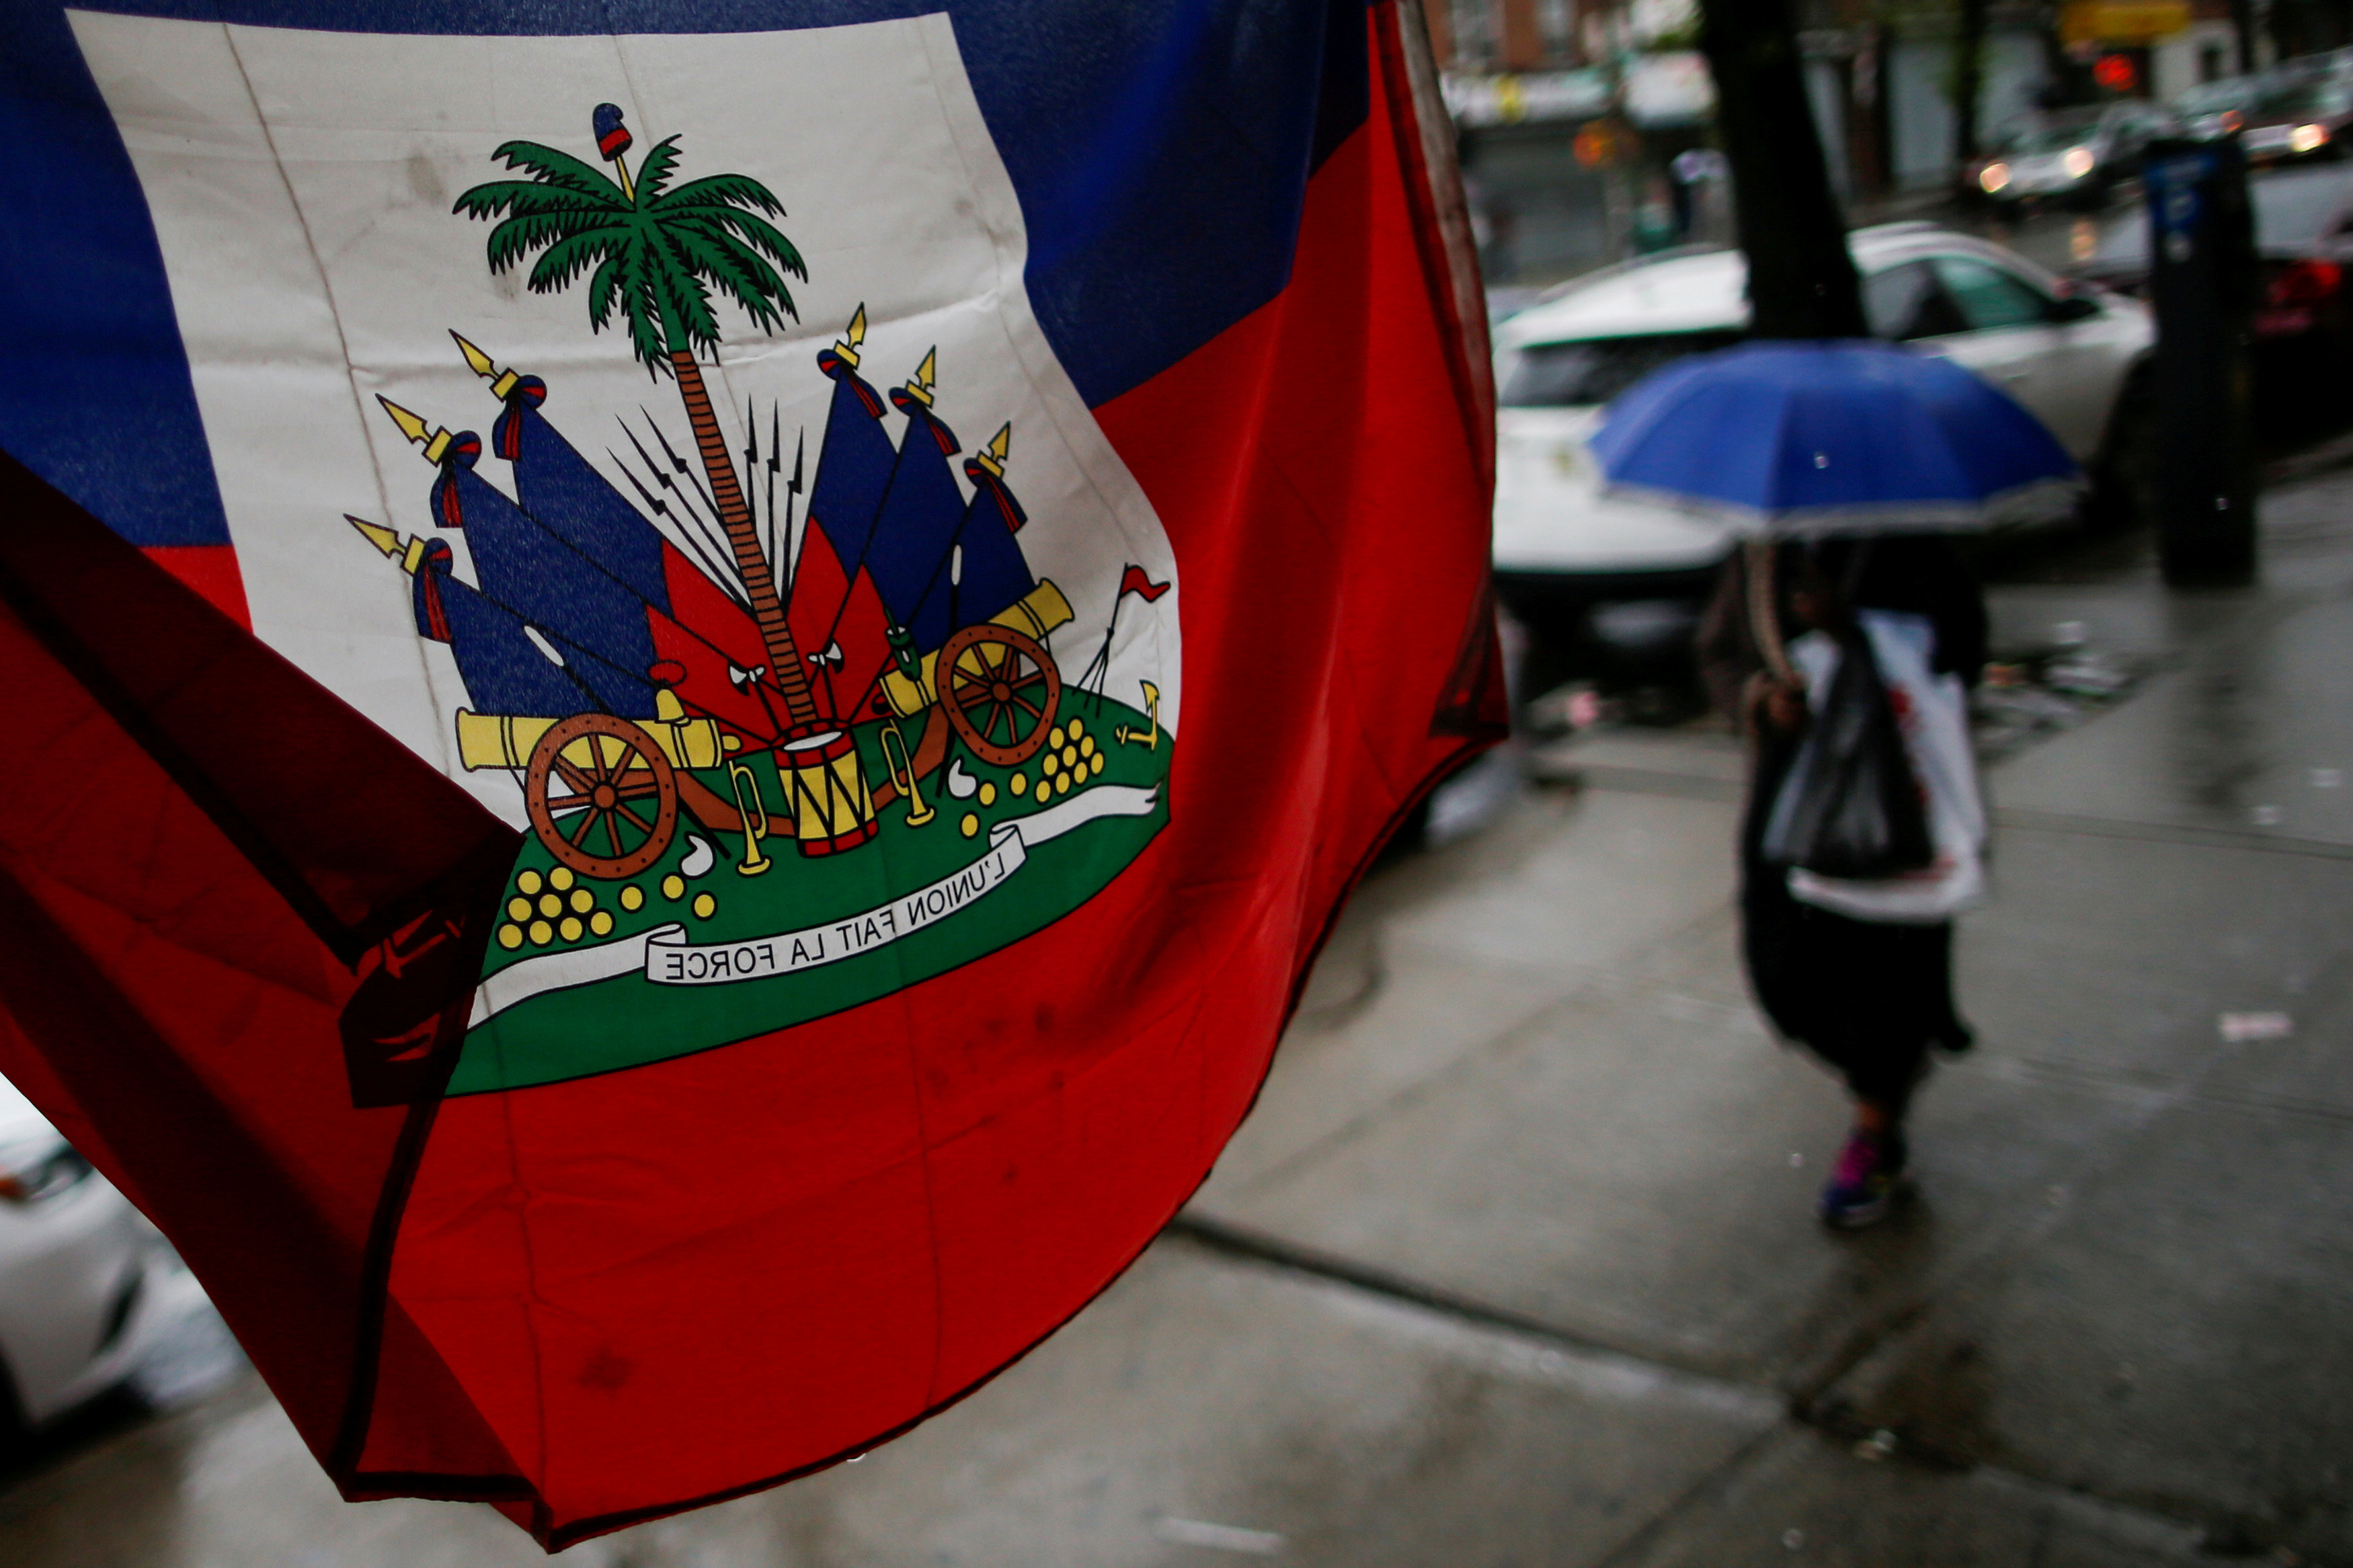 FILE PHOTO: A Flag from Haiti is pictured in a local store as a woman walks under rain at the neighborhood of Brooklyn in New York, U.S. May 13, 2017. REUTERS/Eduardo Munoz/File Photo